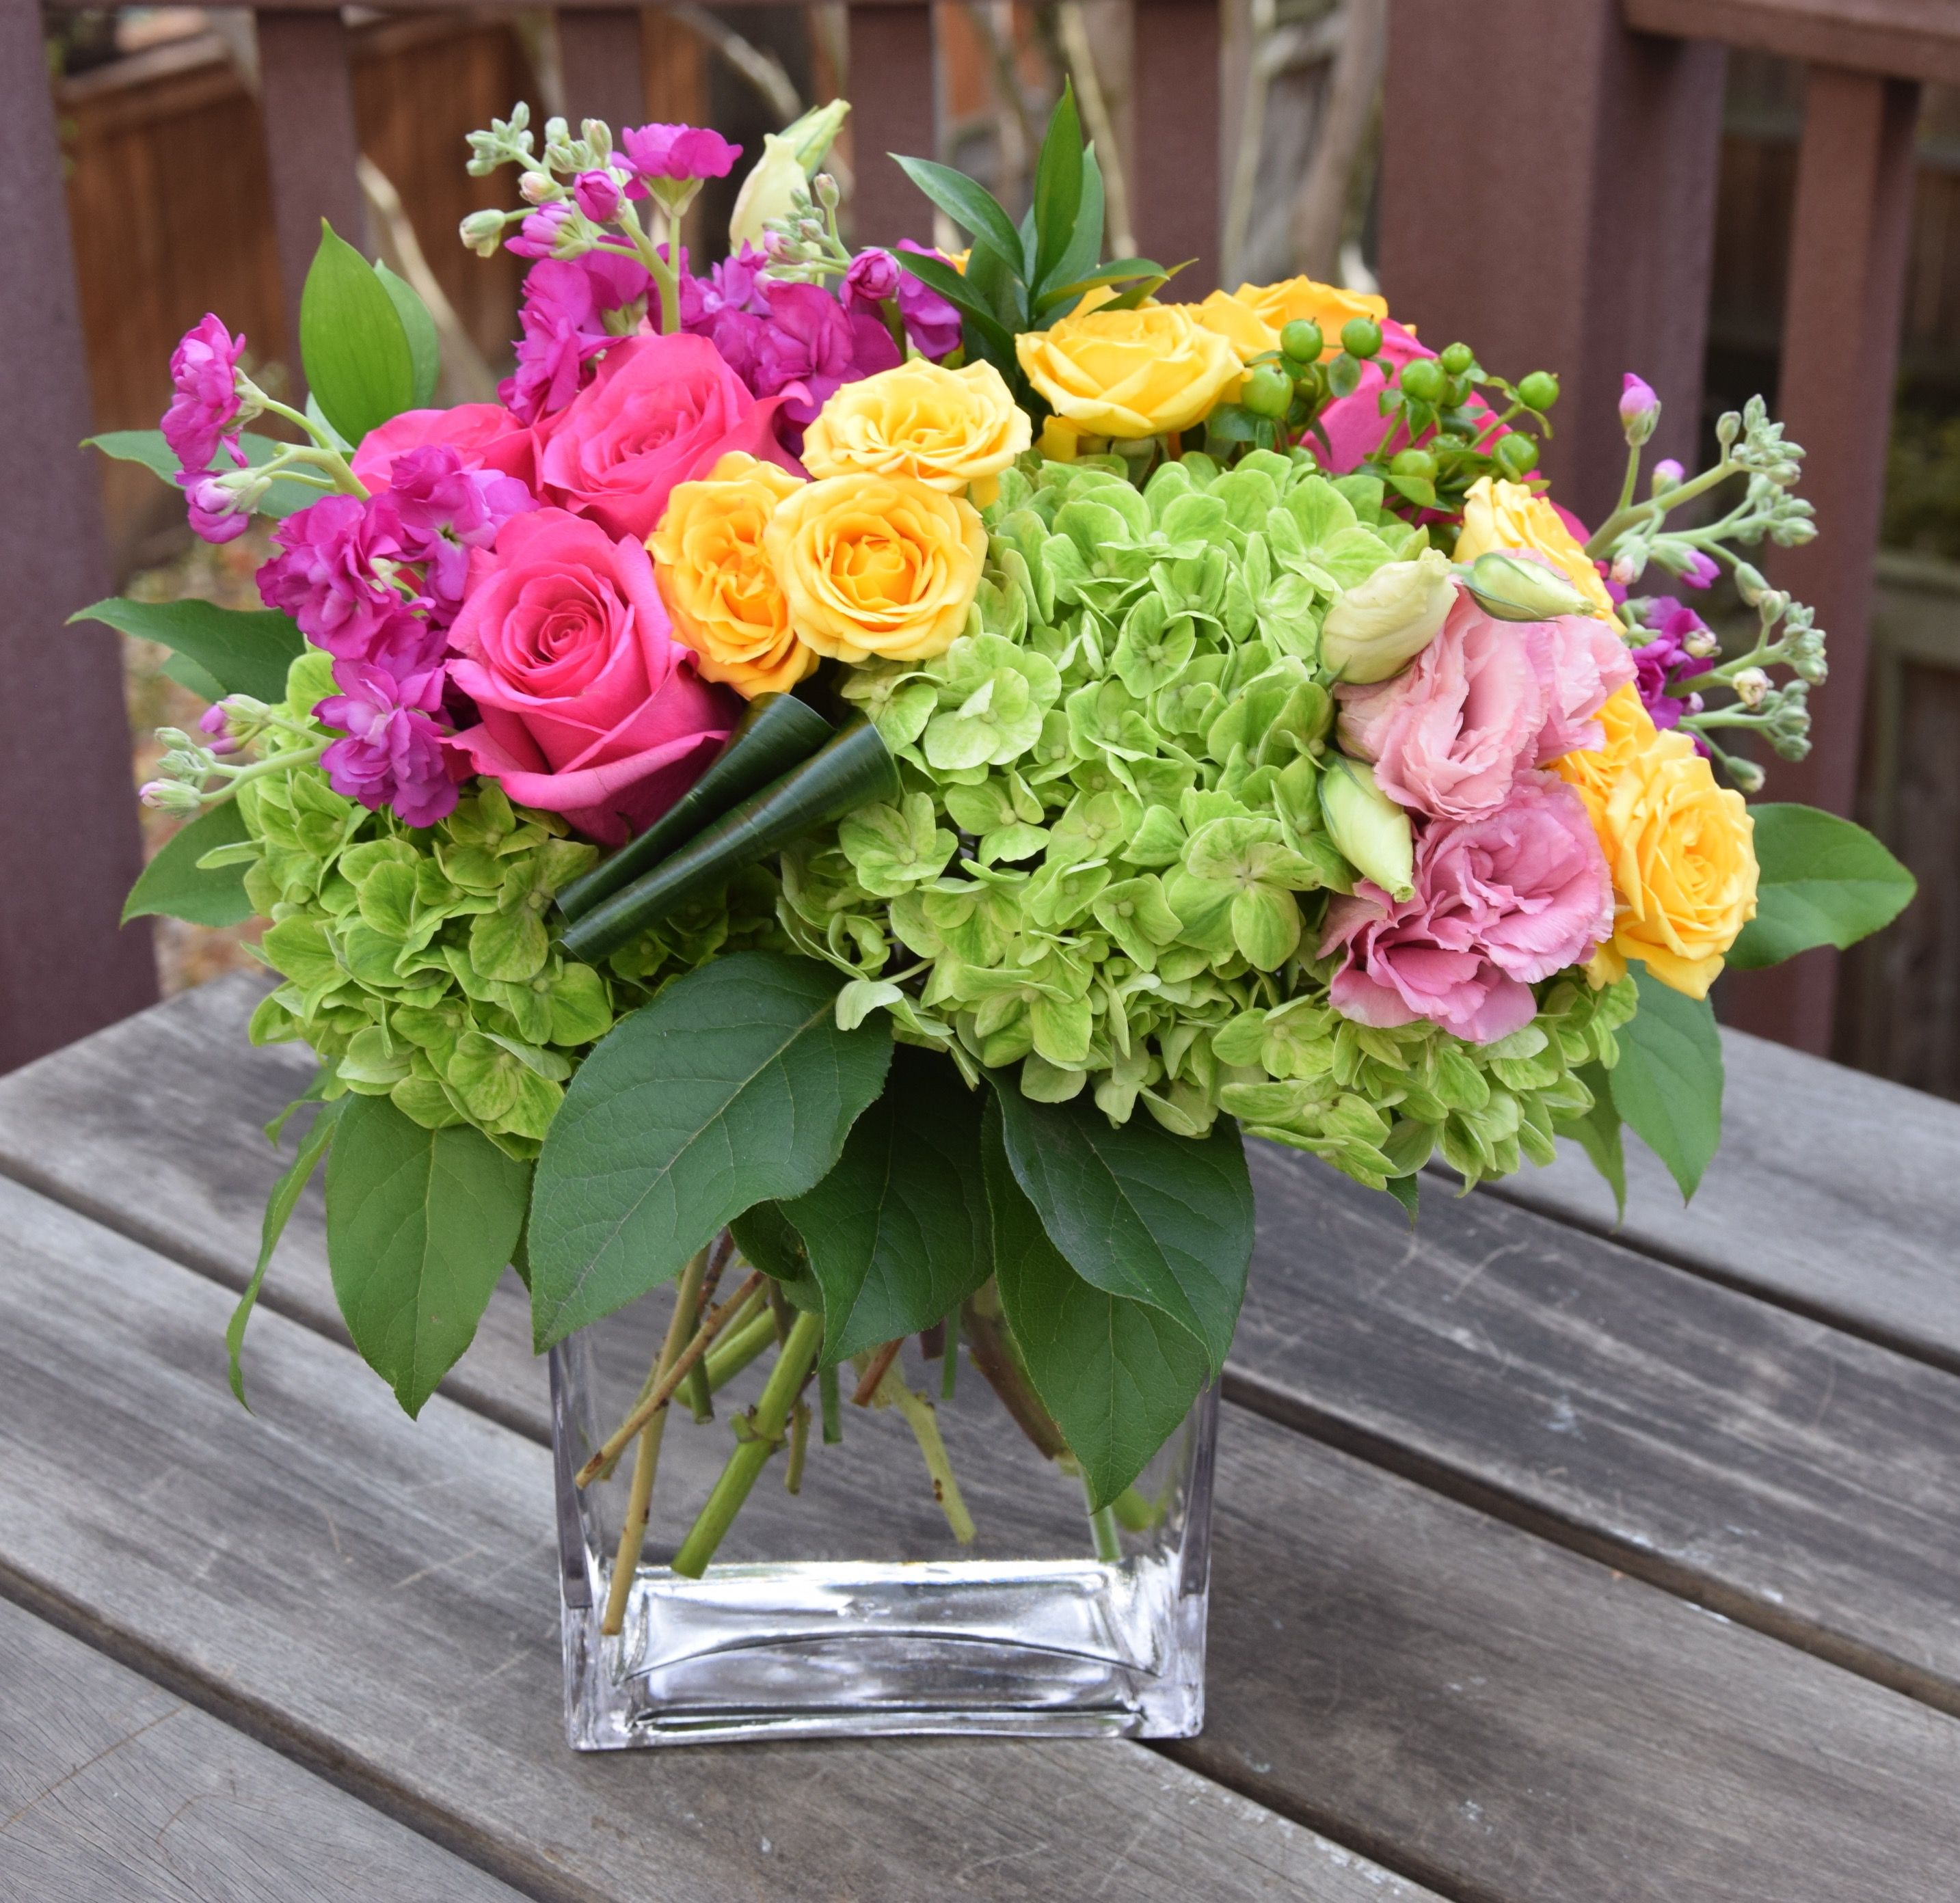 Fresh flower bouquet in a vase created by fleurelity fleurelity fresh flower bouquet in a vase created by fleurelity izmirmasajfo